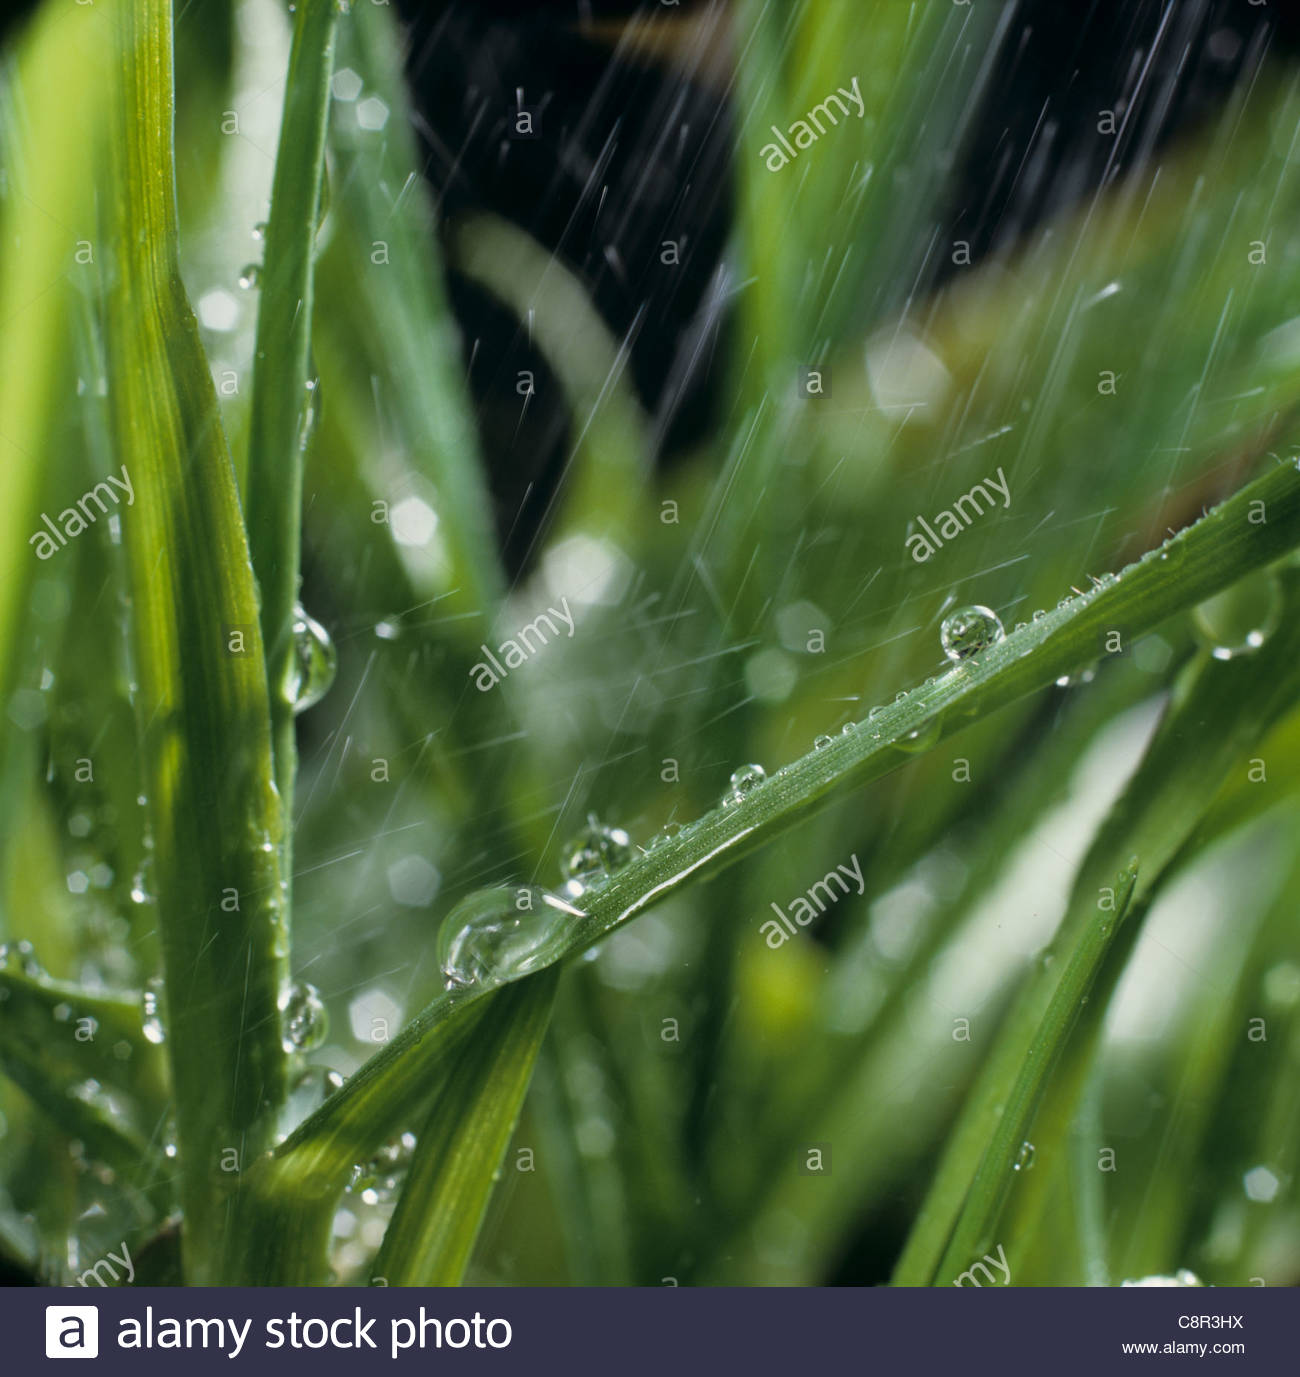 Simulated rain water falling on wheat leaves - Stock Image